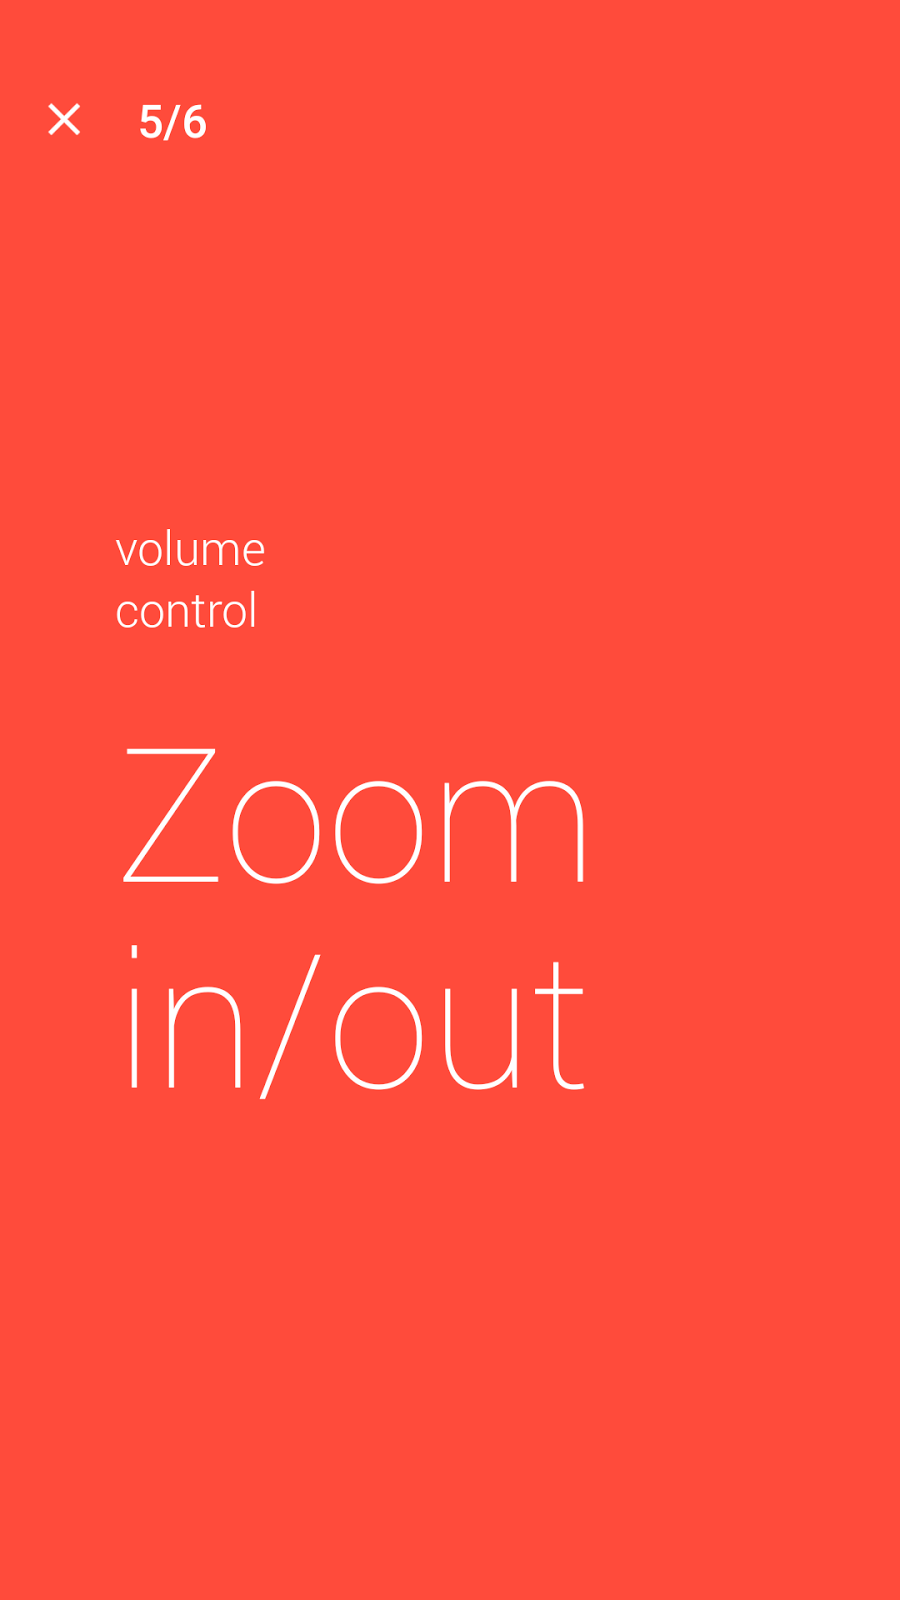 Zoom in and out to increase or reduce volume